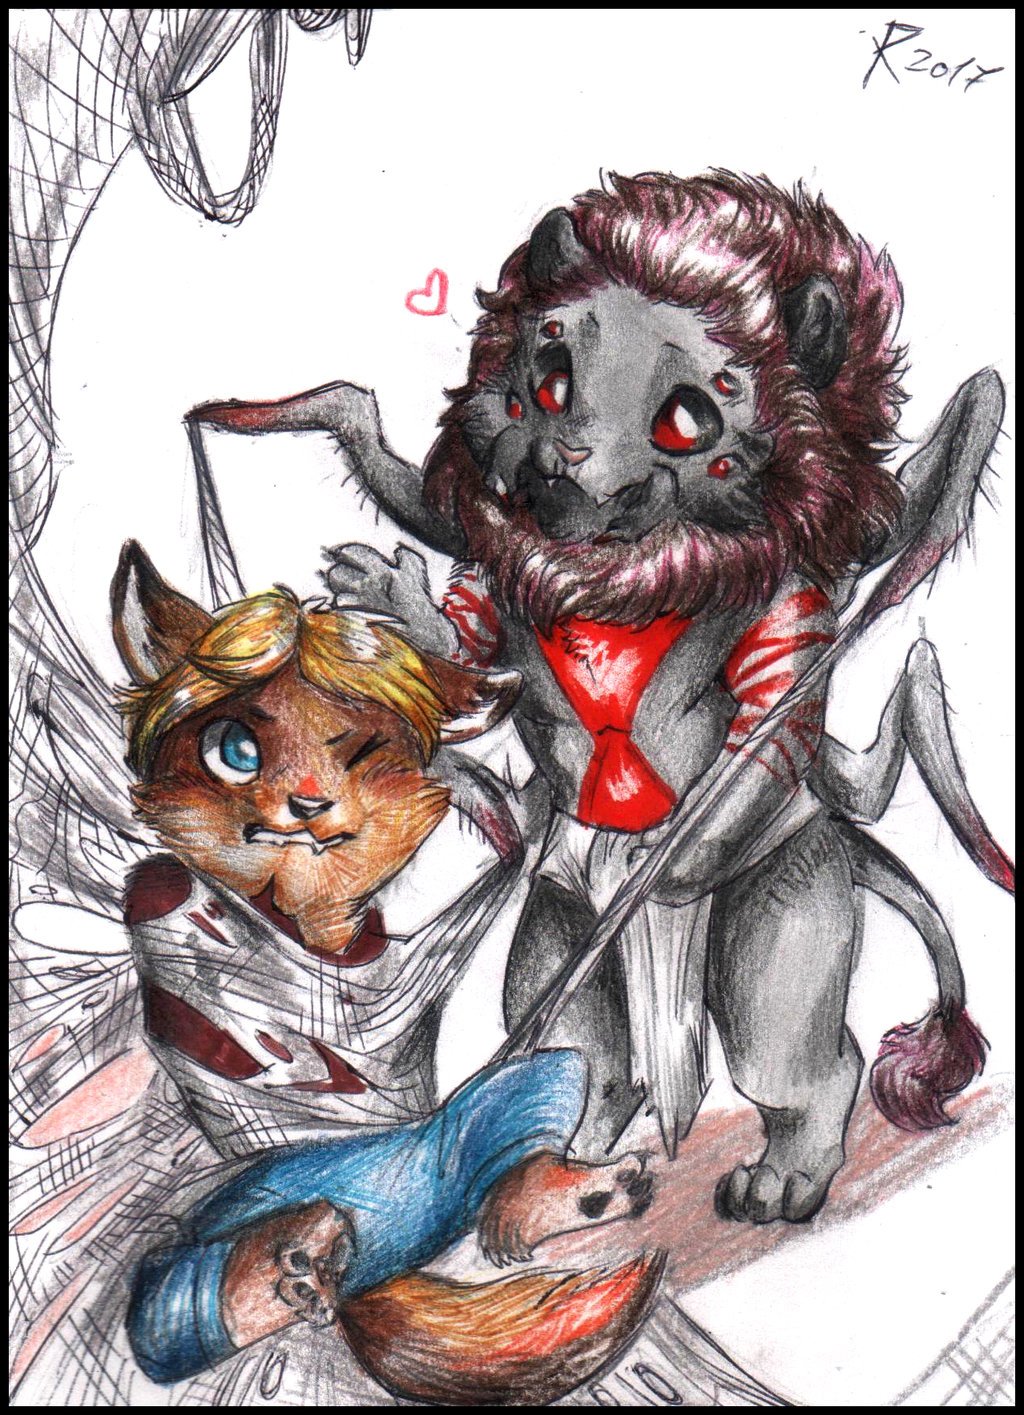 Chibi commission - Spiderlion and Coyote